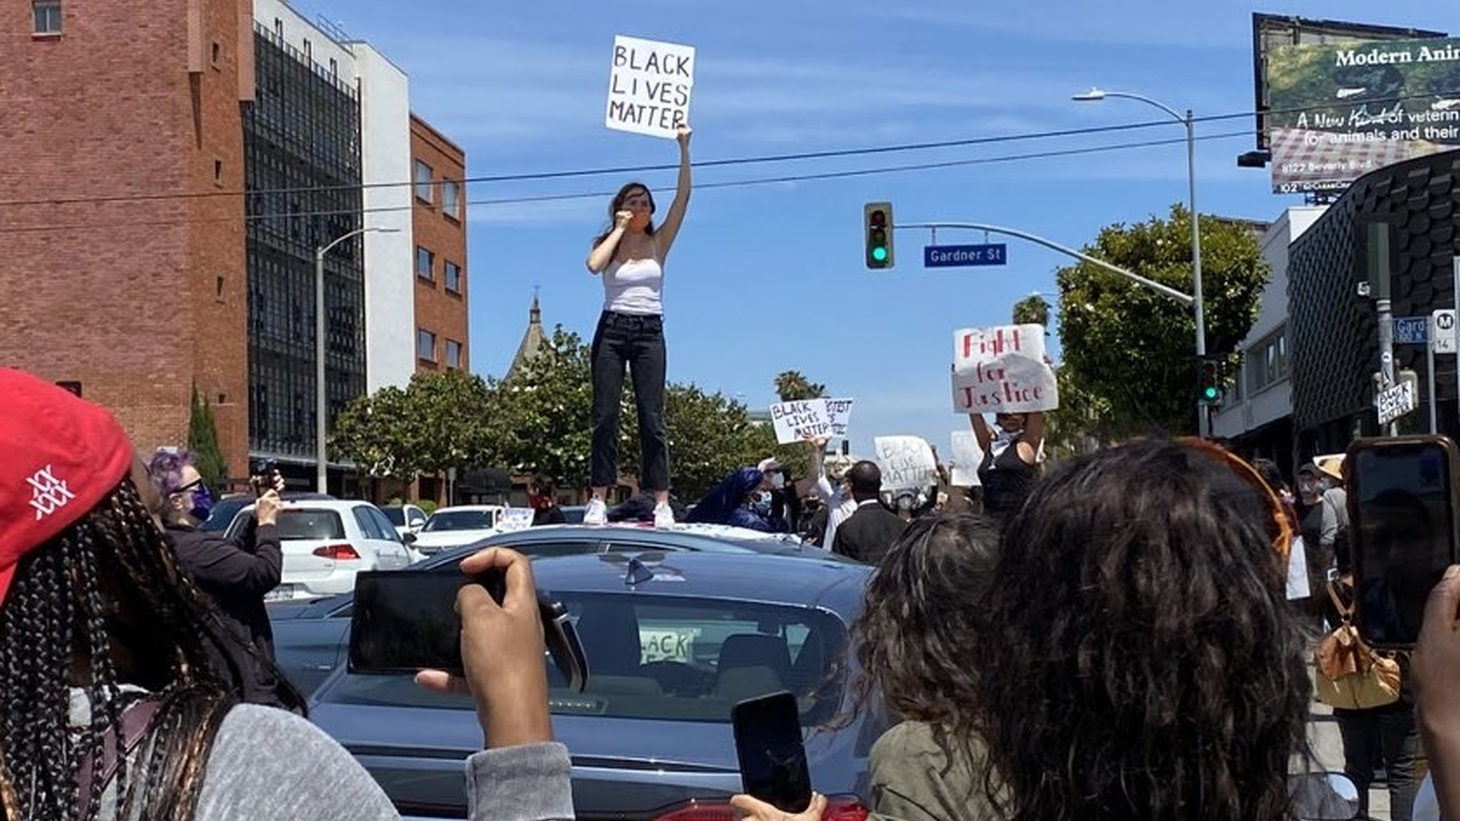 Protesters gathered in the Fairfax District of Los Angeles on May 30 to rally against the death of George Floyd.